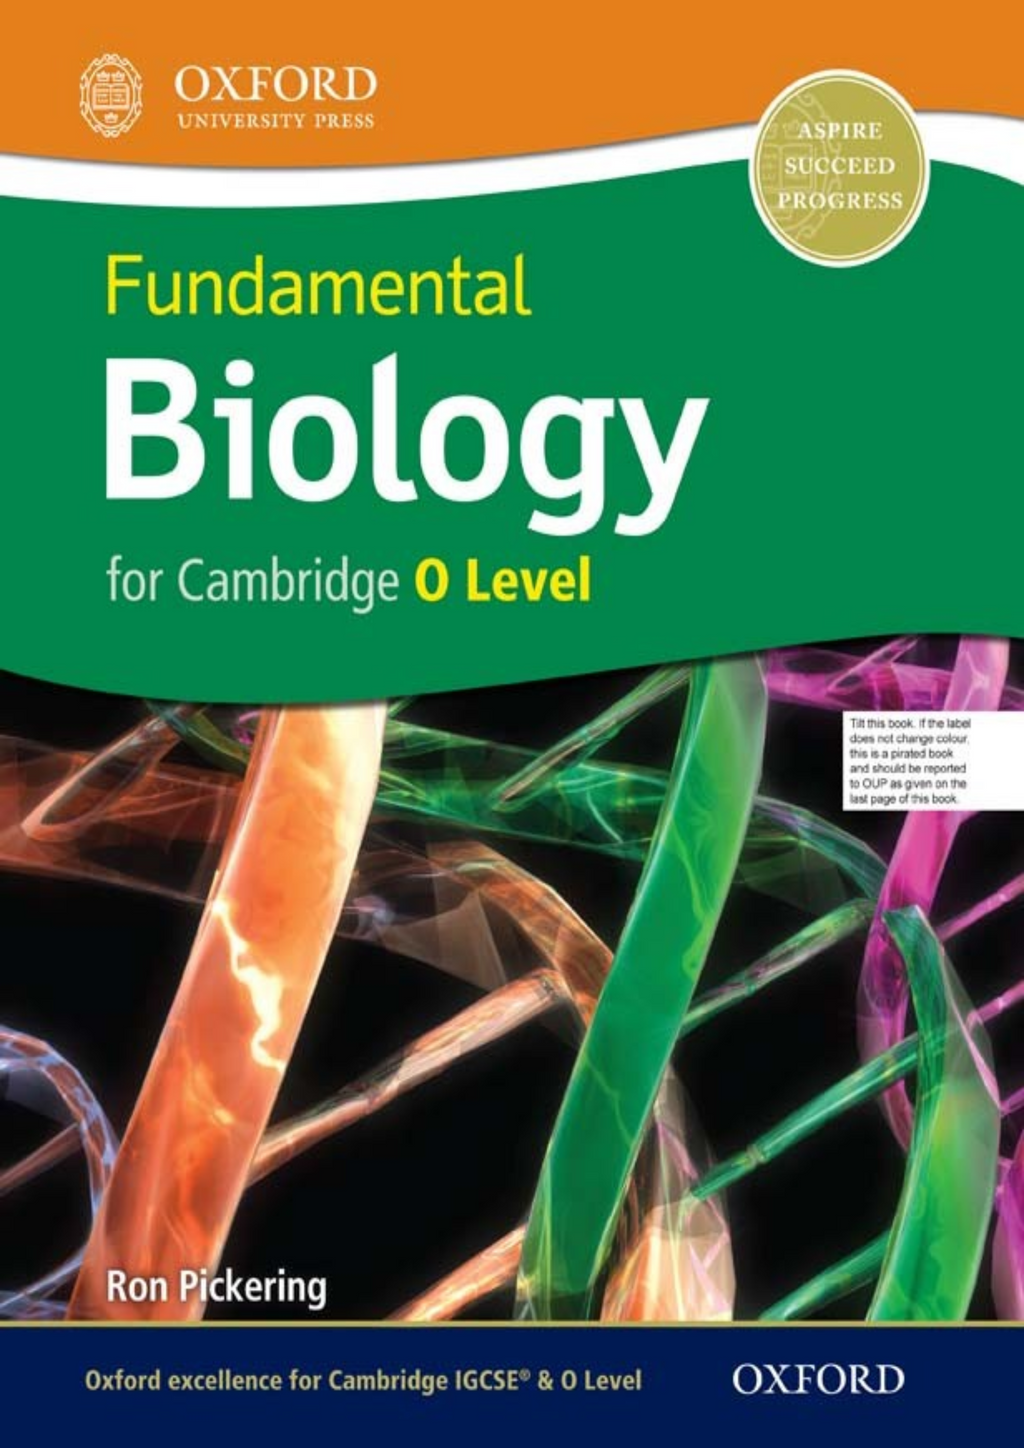 Cambridge Fundamental Biology (5090) Coursebook by Oxford